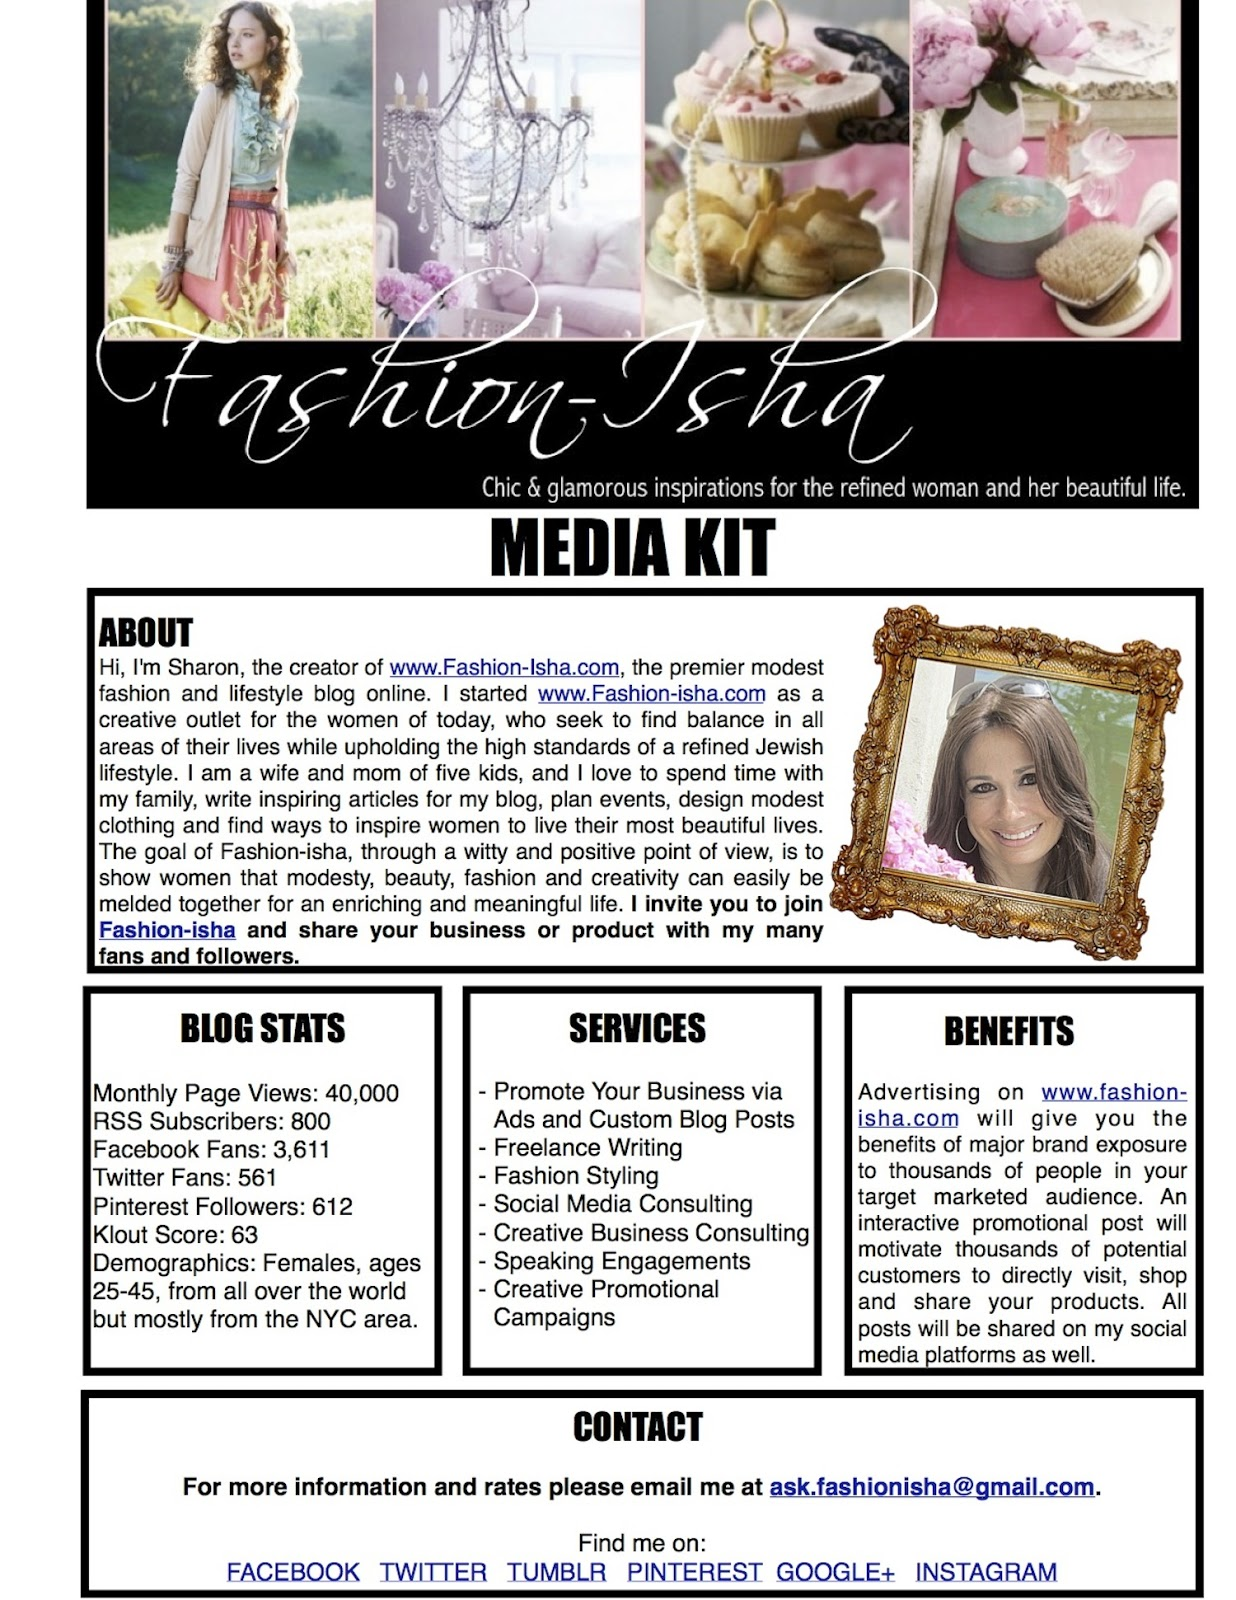 press pack template - my media kit let me help you promote your business